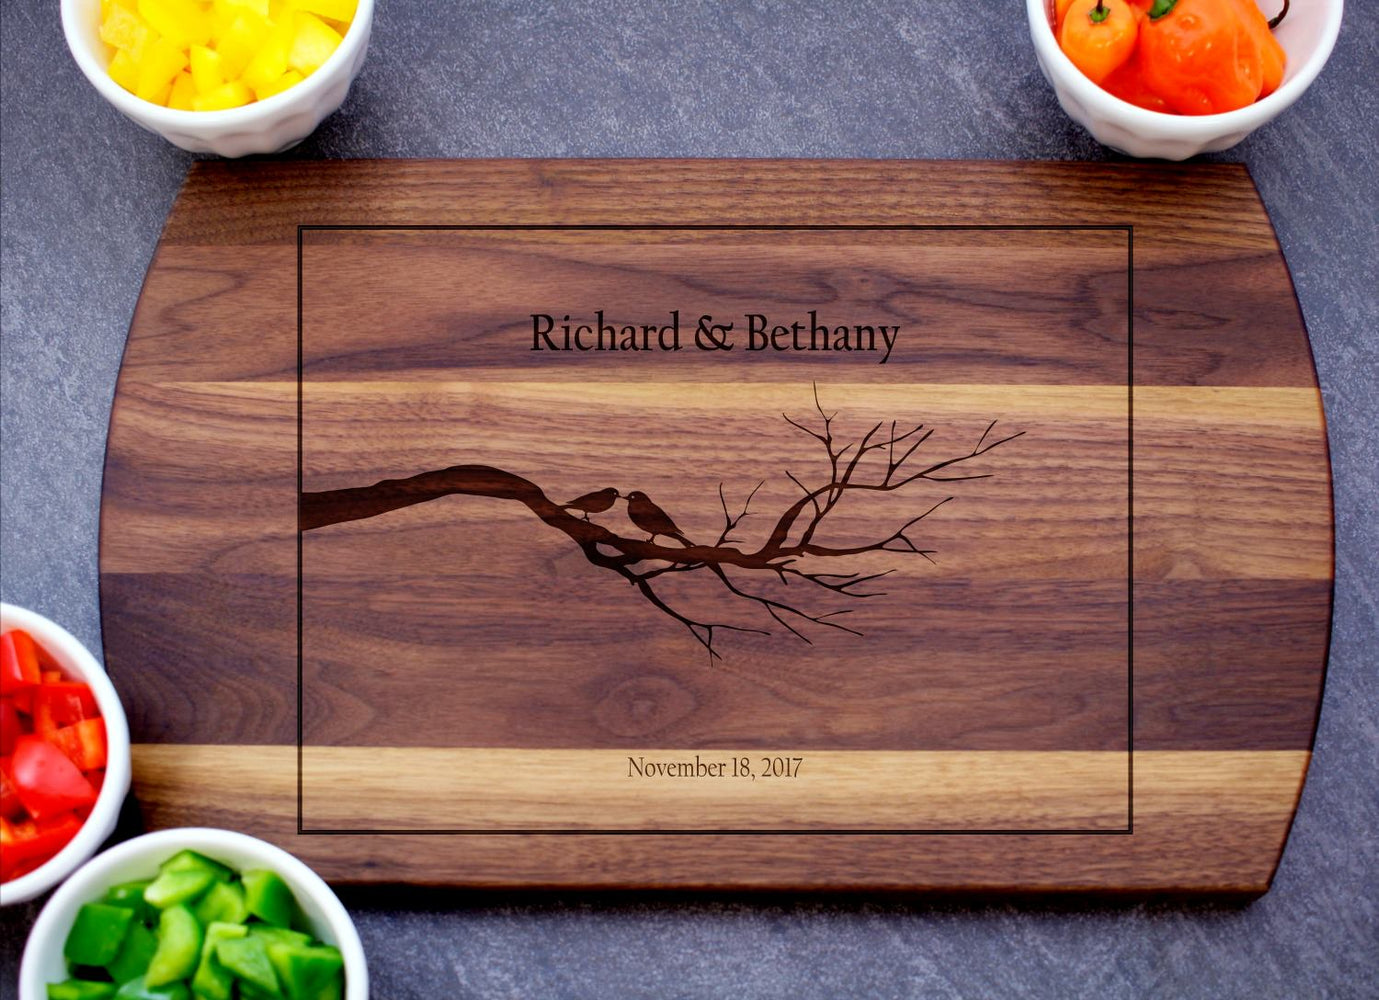 Love Birds | Personalized Laser Engraved Cutting Board